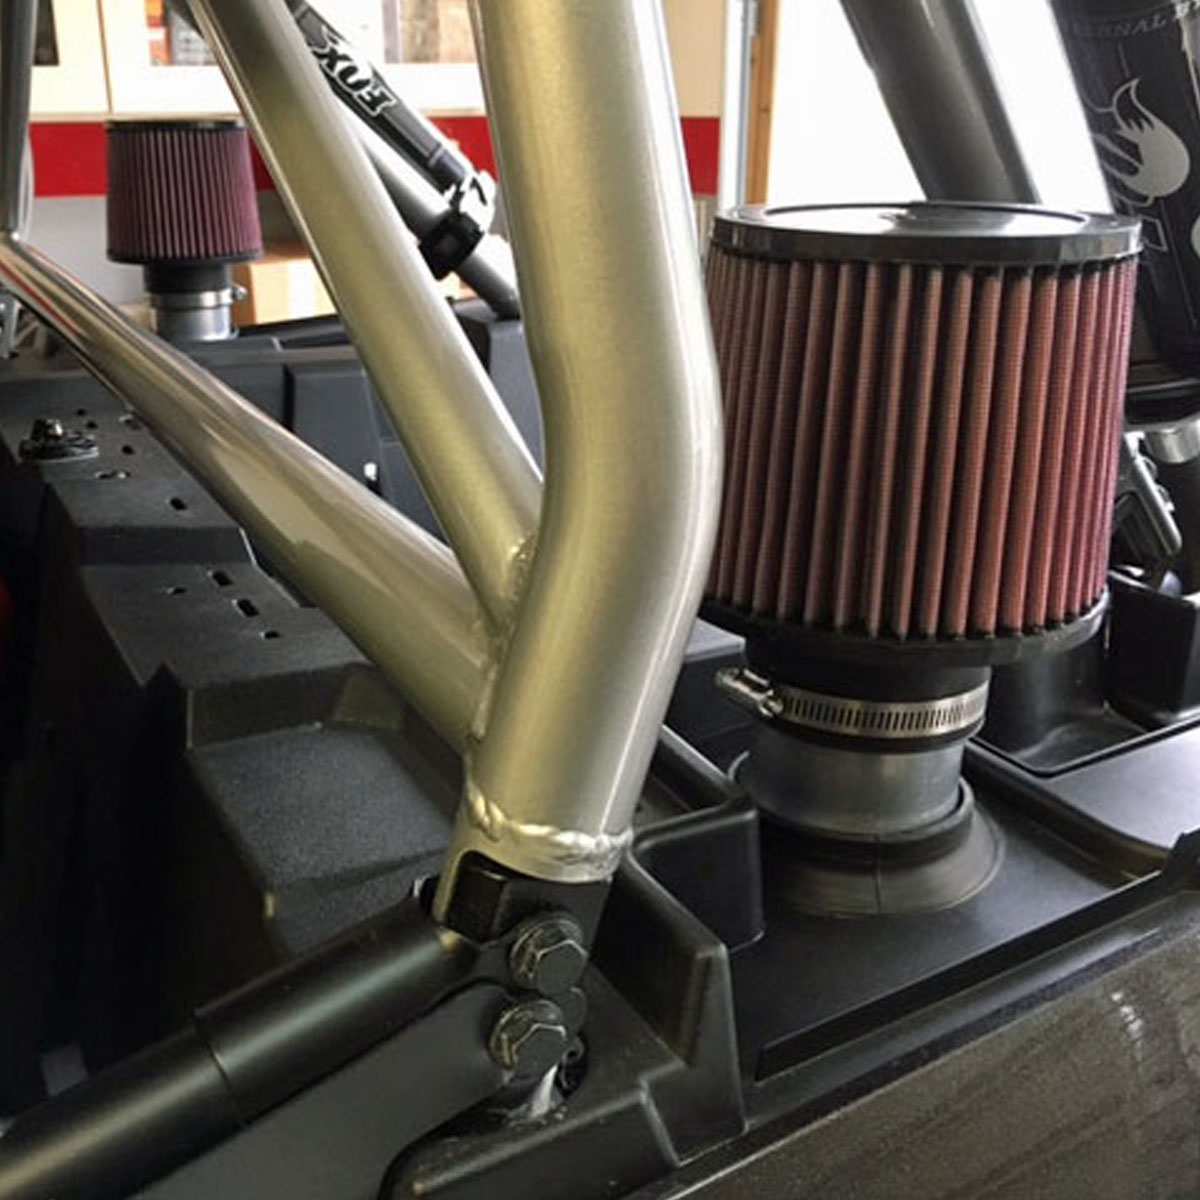 Polaris Rzr Xp 1000 Turbo Velocity Intake System Air